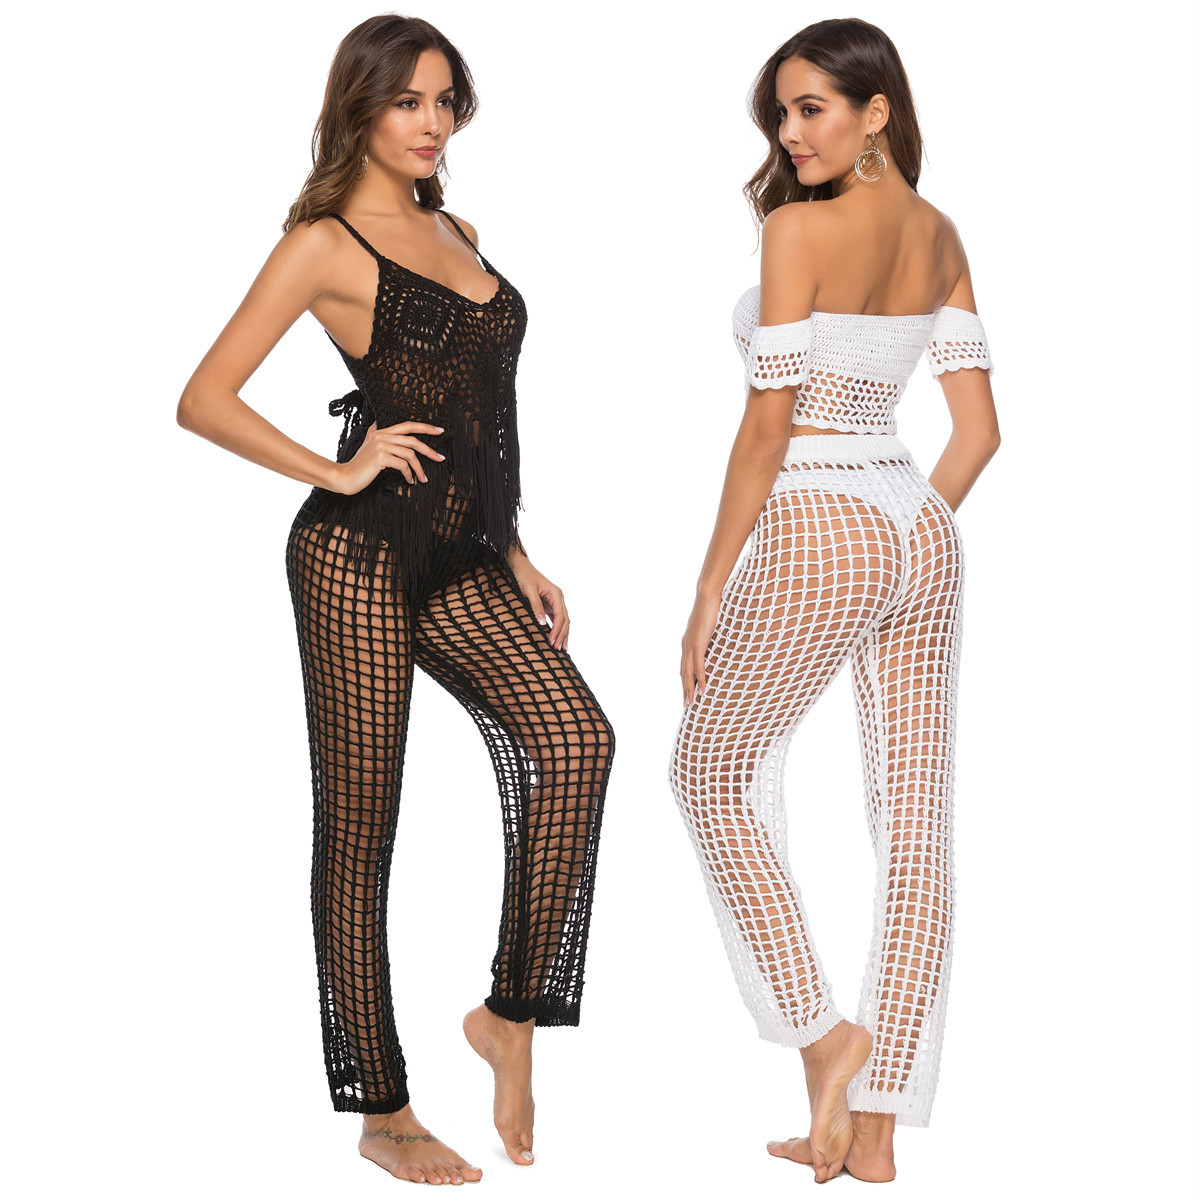 WOMEN'S Dress Hot Sales-Nightclub Hollow Out Trousers Hook Knitted Beach Shorts